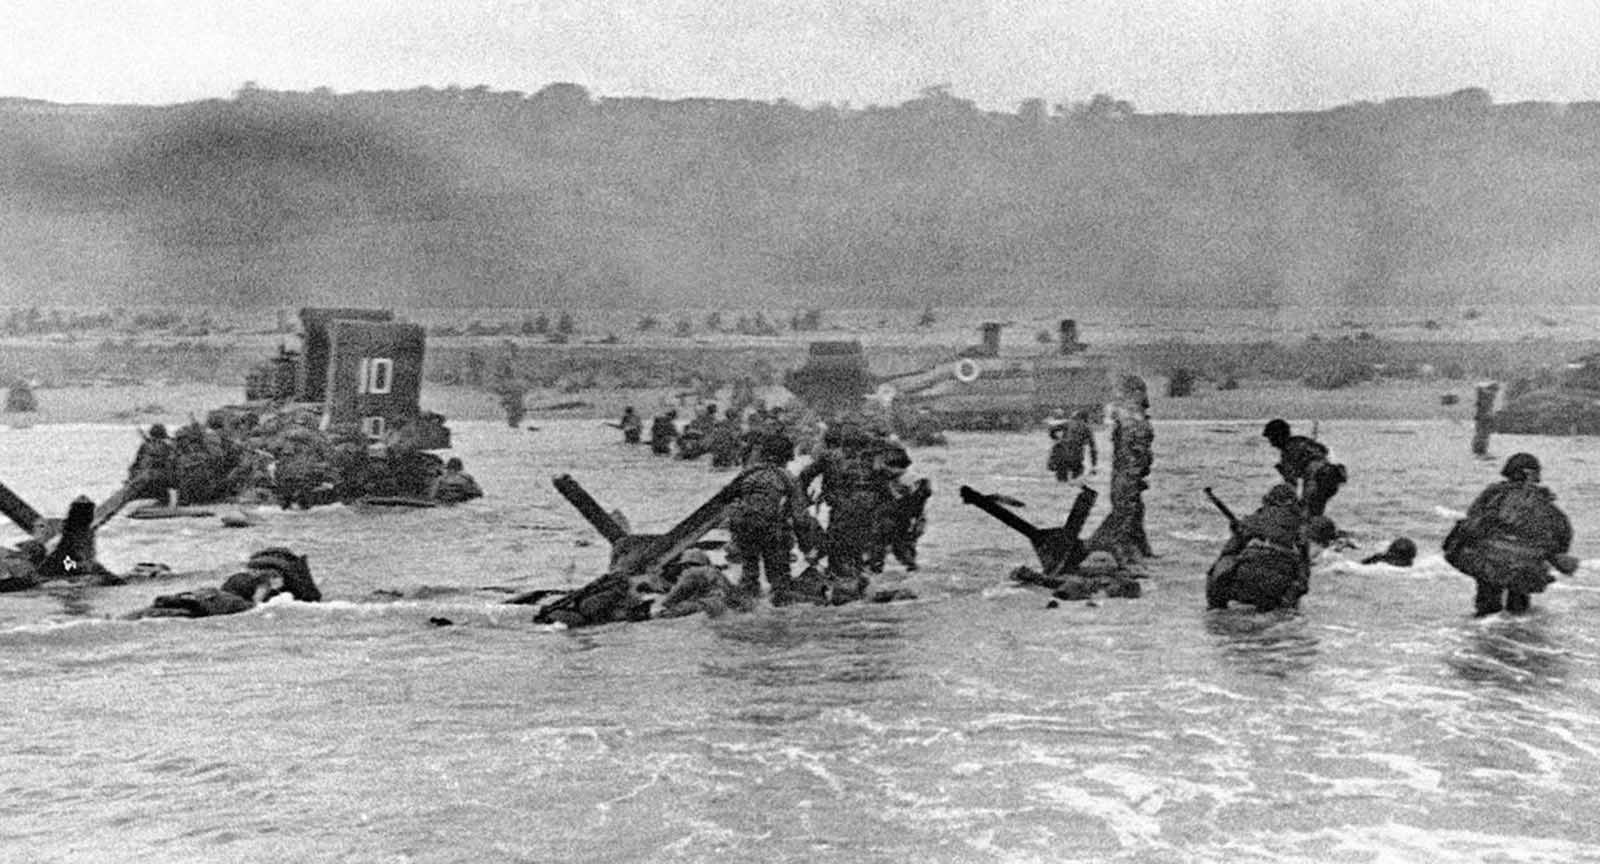 Some of the first assault troops to hit the beachhead in Normandy, France take cover behind enemy obstacles to fire on German forces as others follow the first tanks plunging through the water towards the German-held shore on June 6, 1944.